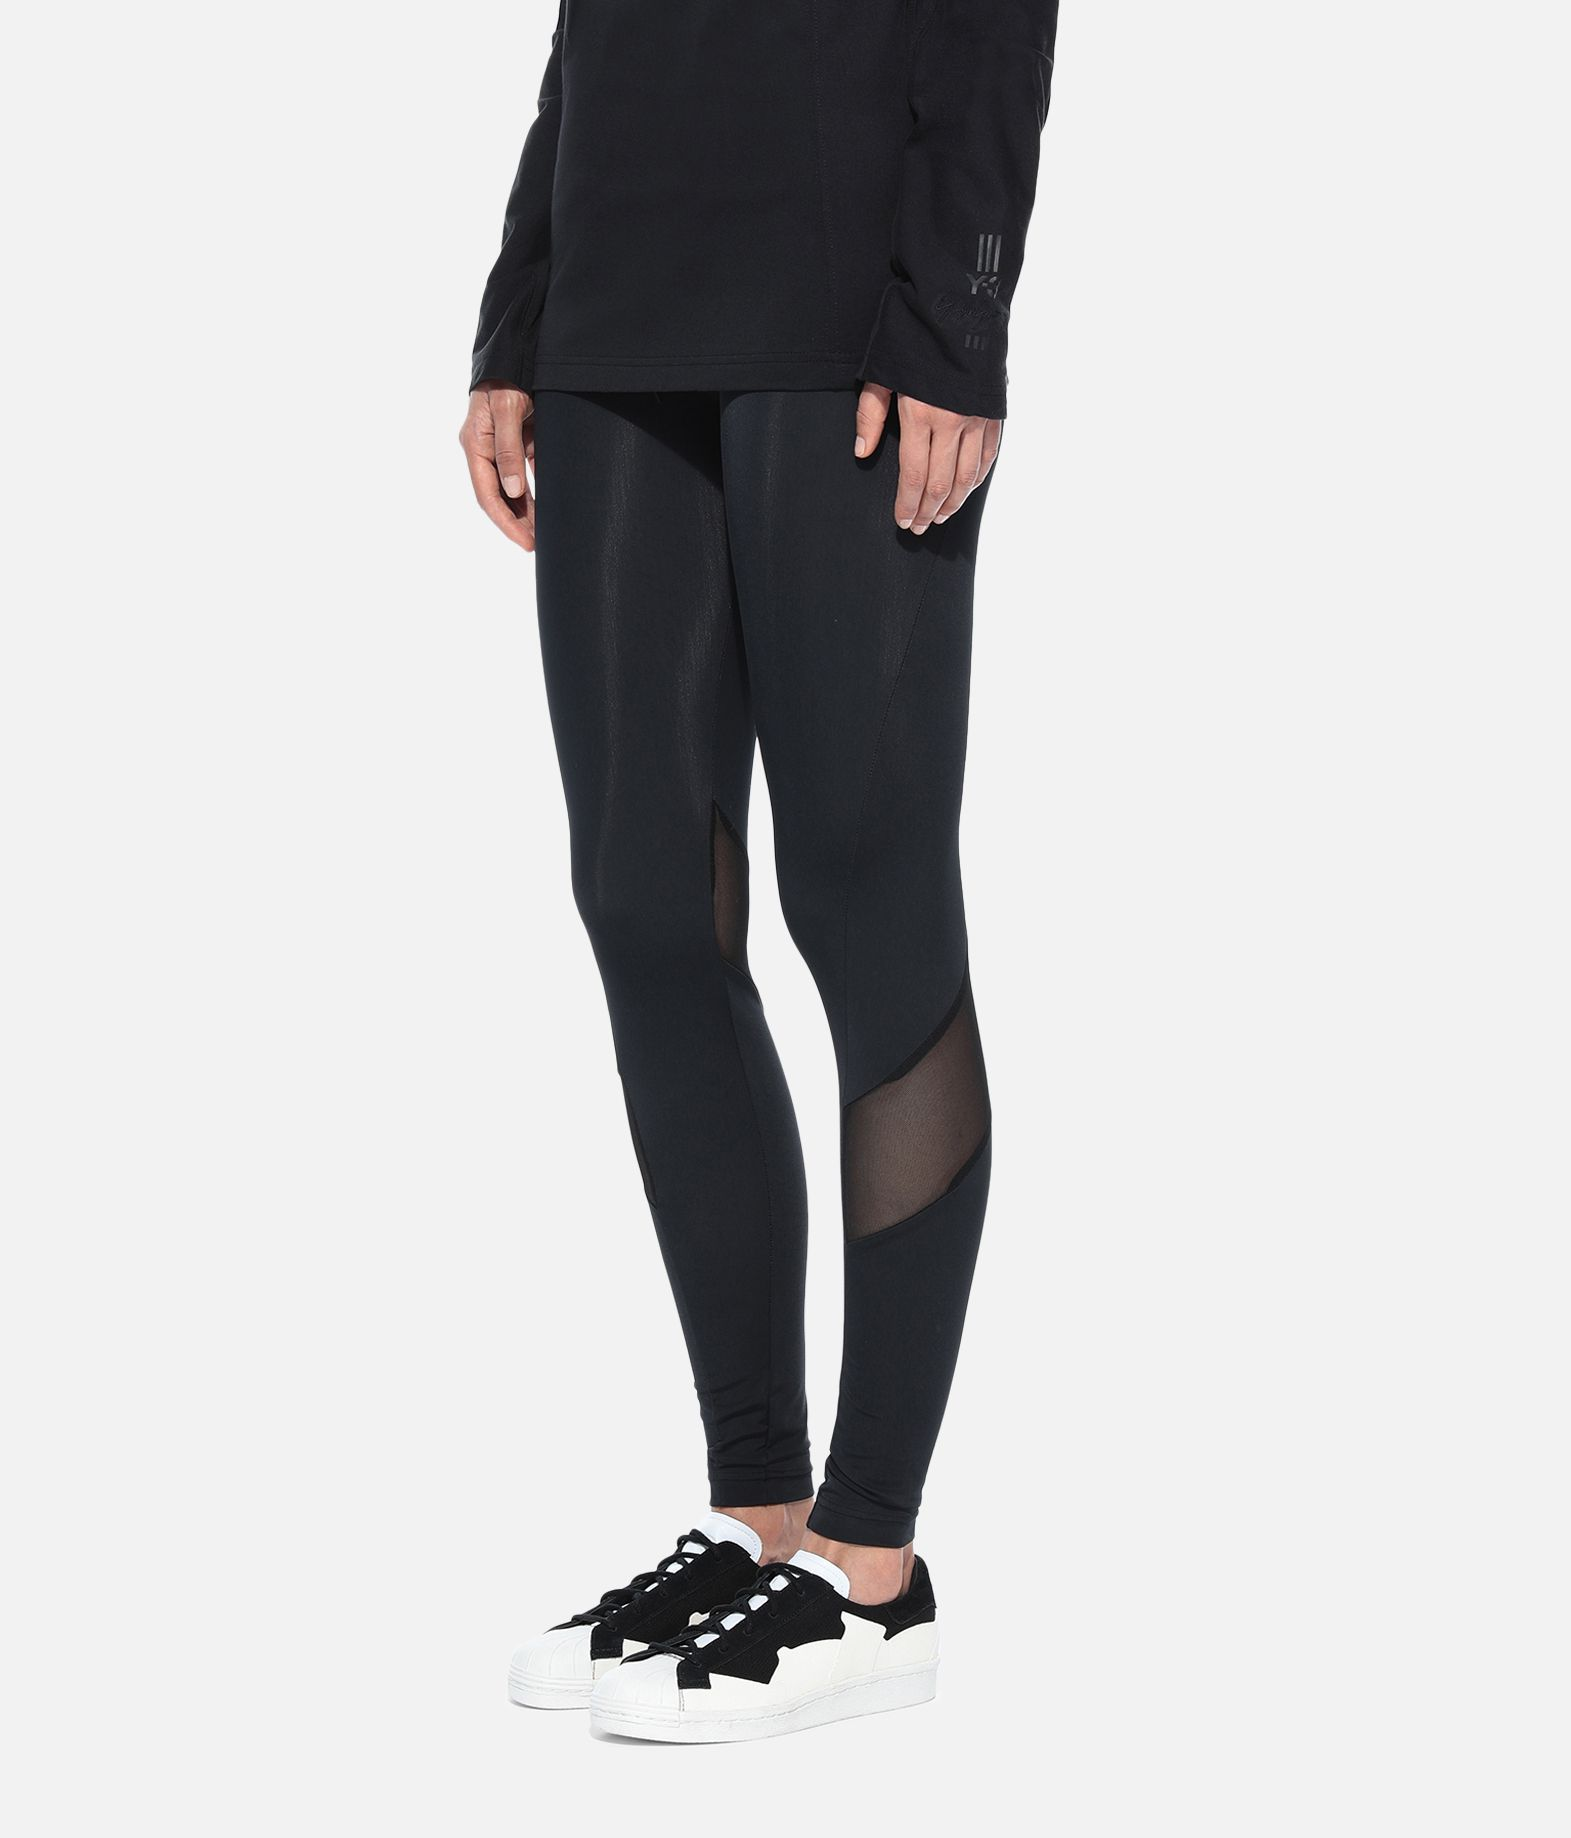 Y-3 Y-3 New Classic Tights Leggings Donna e